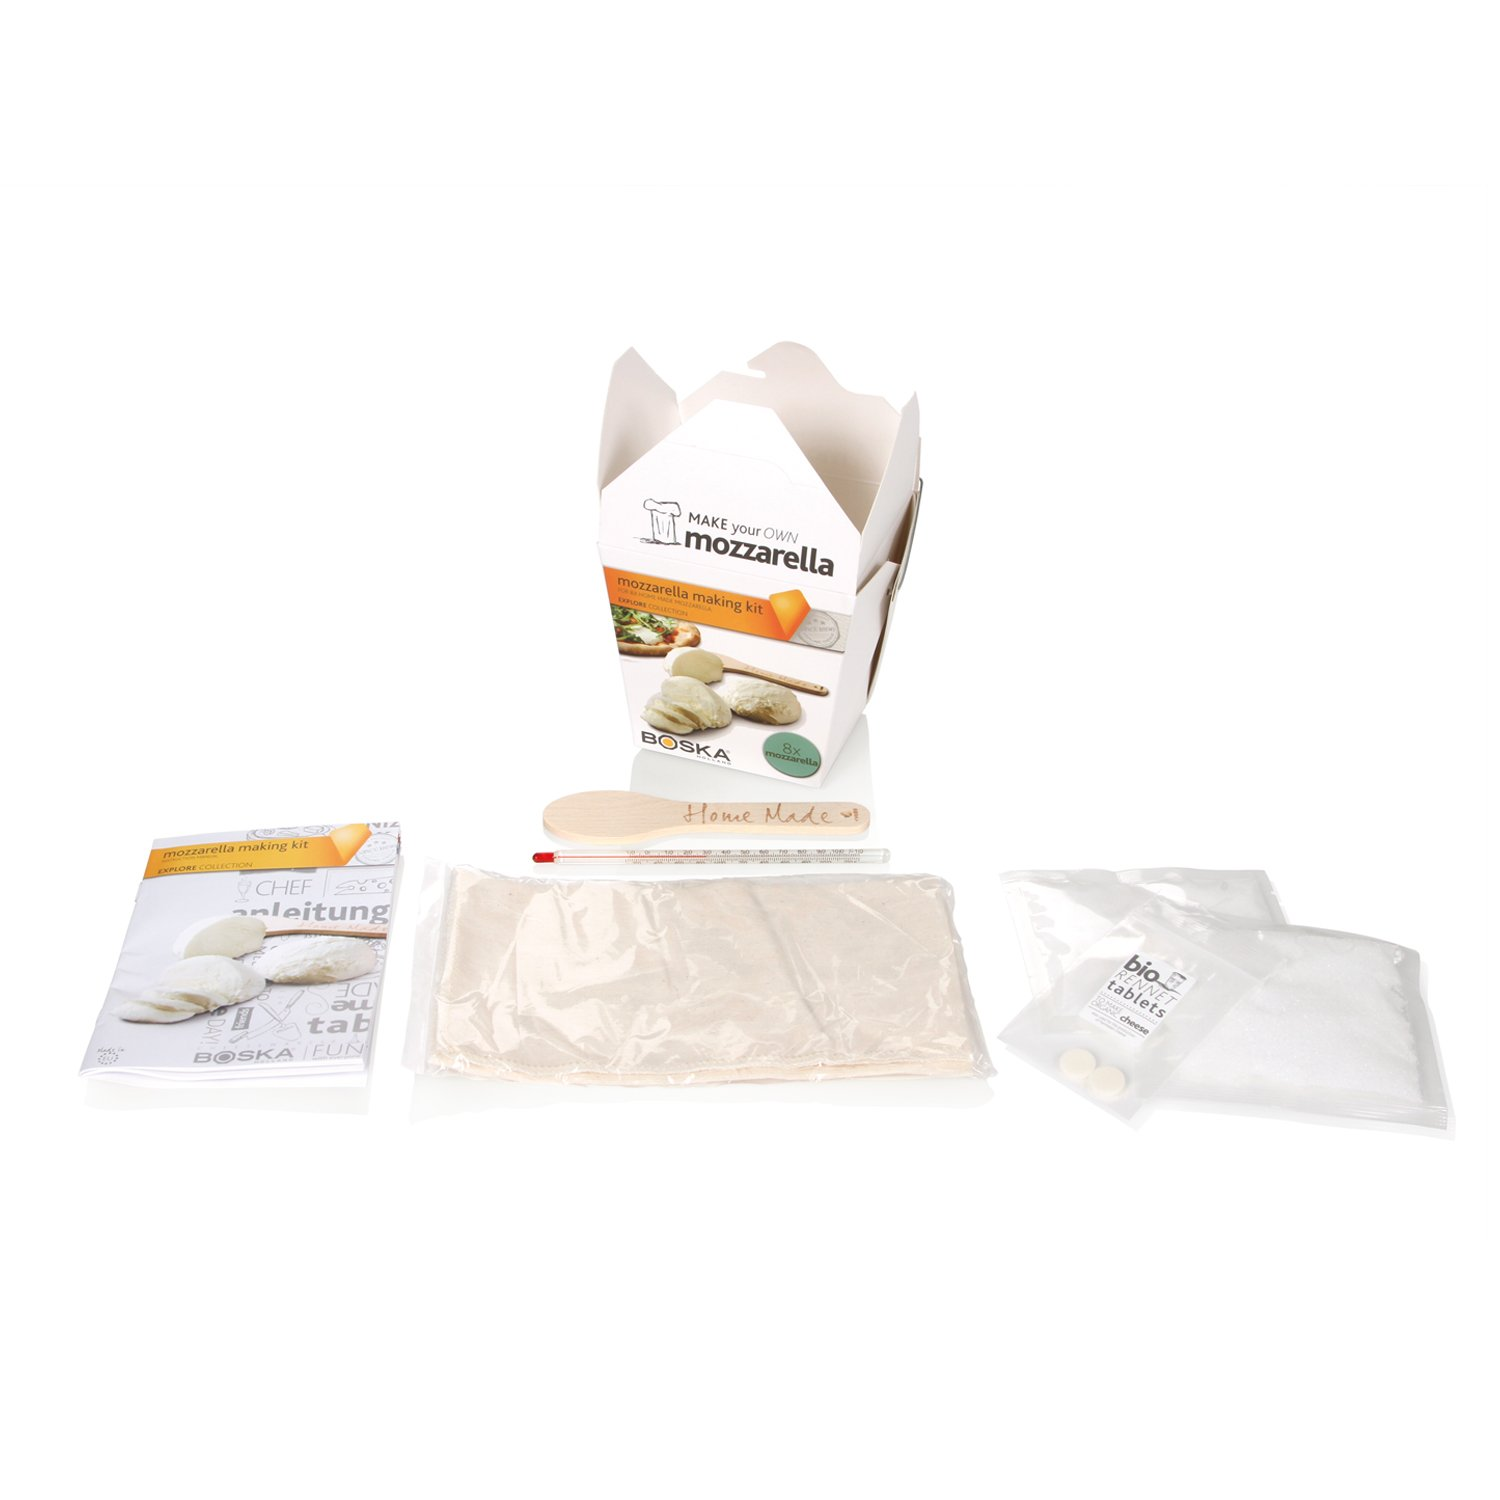 Boska Holland Mozzarella Cheese Making Kit, Homemade Set, Makes up to 8 Batches, Explore Collection by Boska Holland (Image #3)